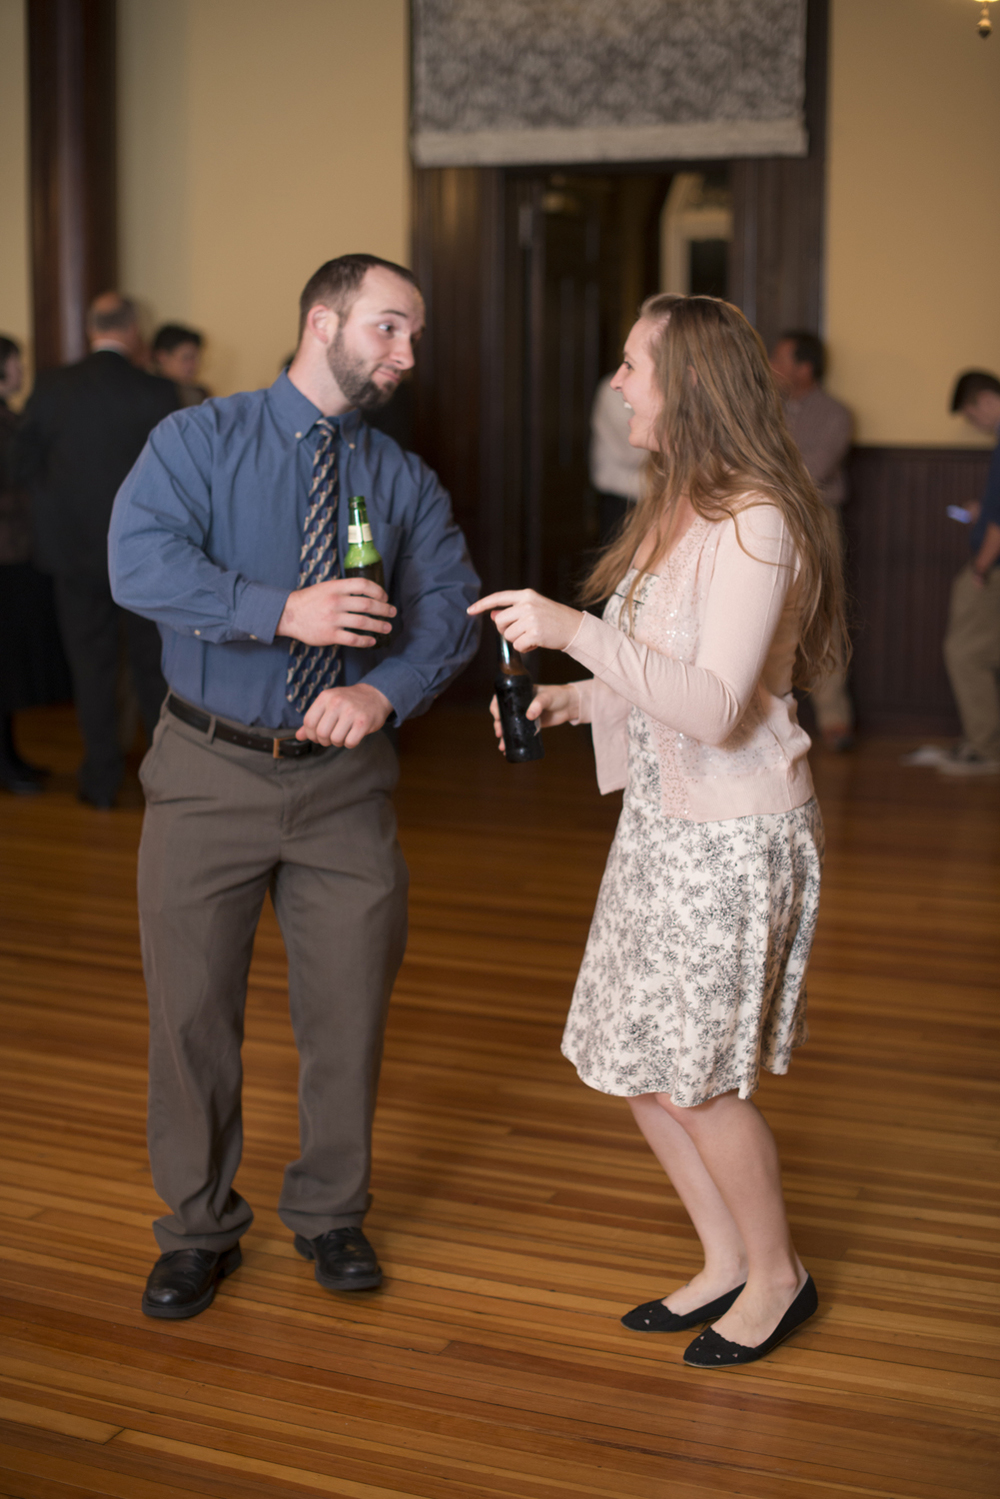 Wedding guests dancing at indoor reception